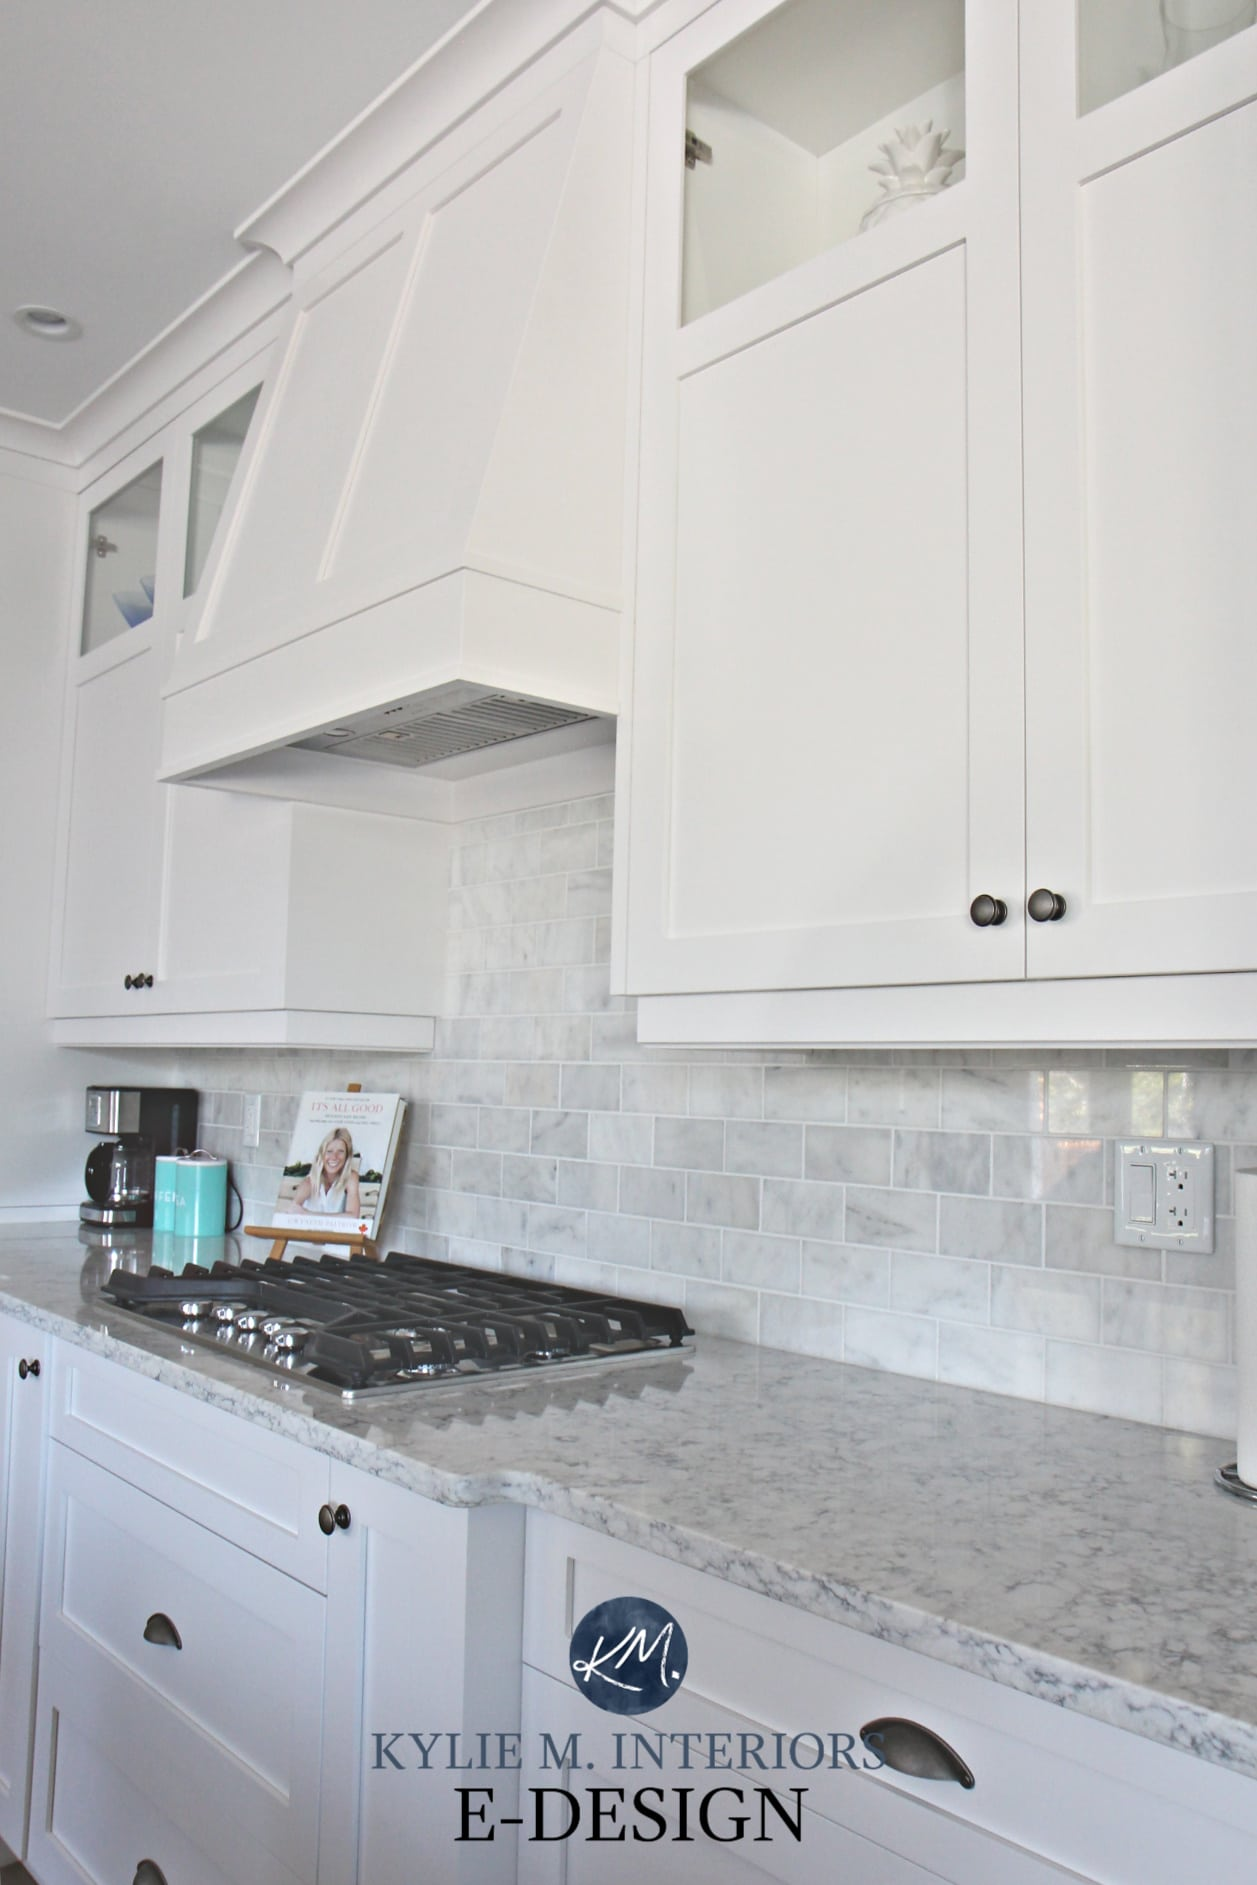 What Is The Best White Paint For Kitchen Cabinets Should You REALLY Paint Your Kitchen Cabinets White? And Which